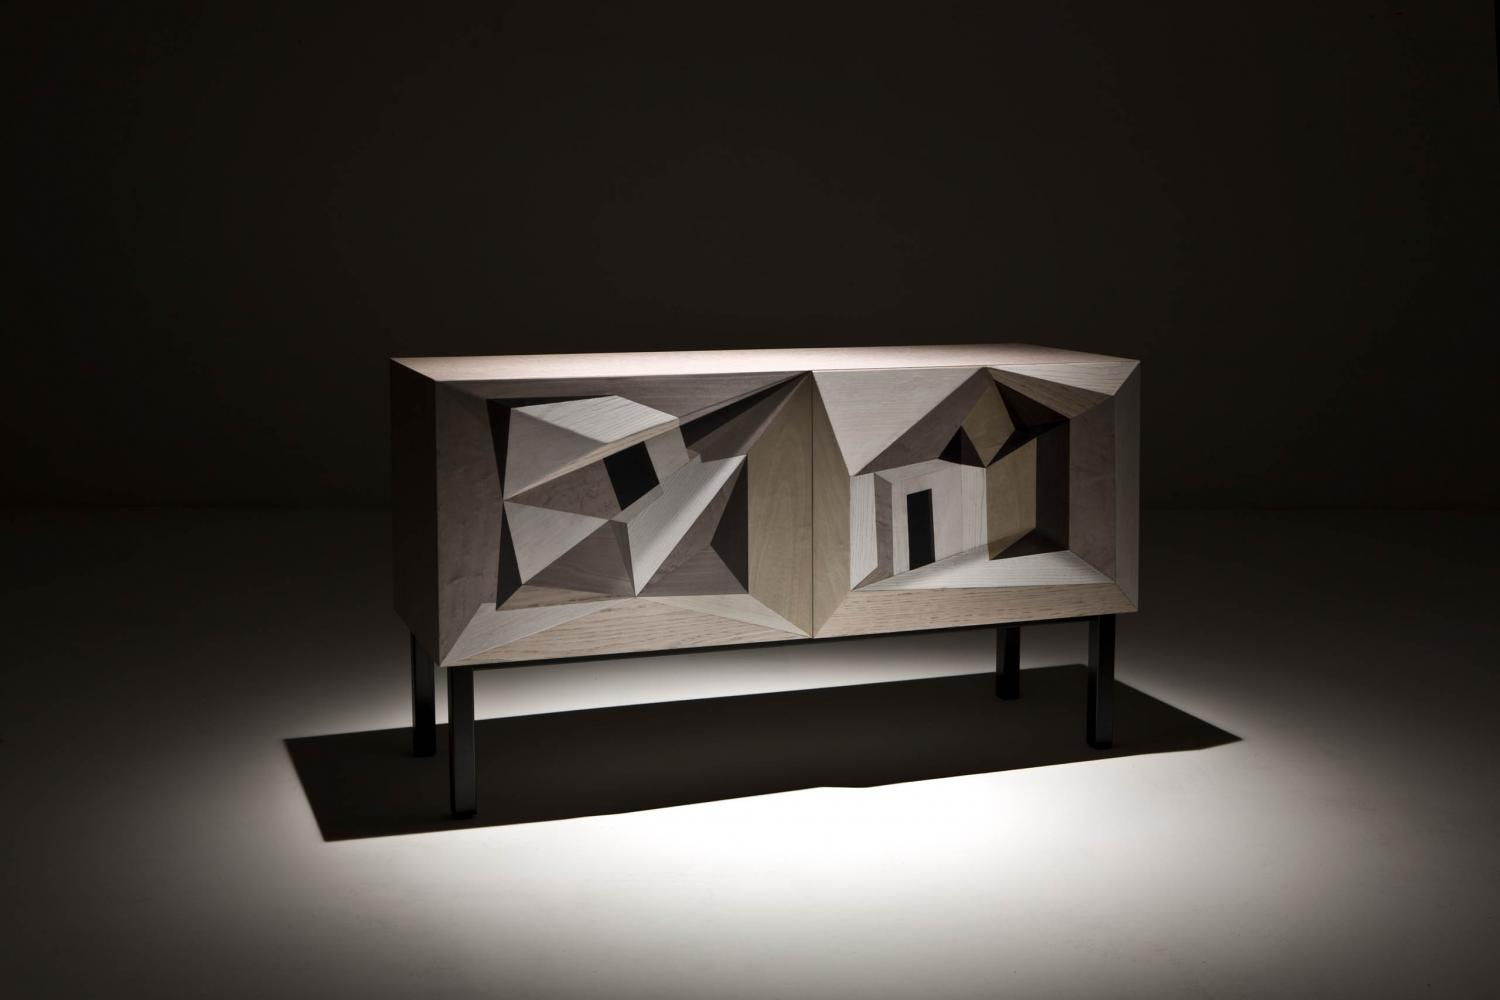 laurameroni intarsia luxury limited edition collection sideboard by marcello Jori realized with inlay